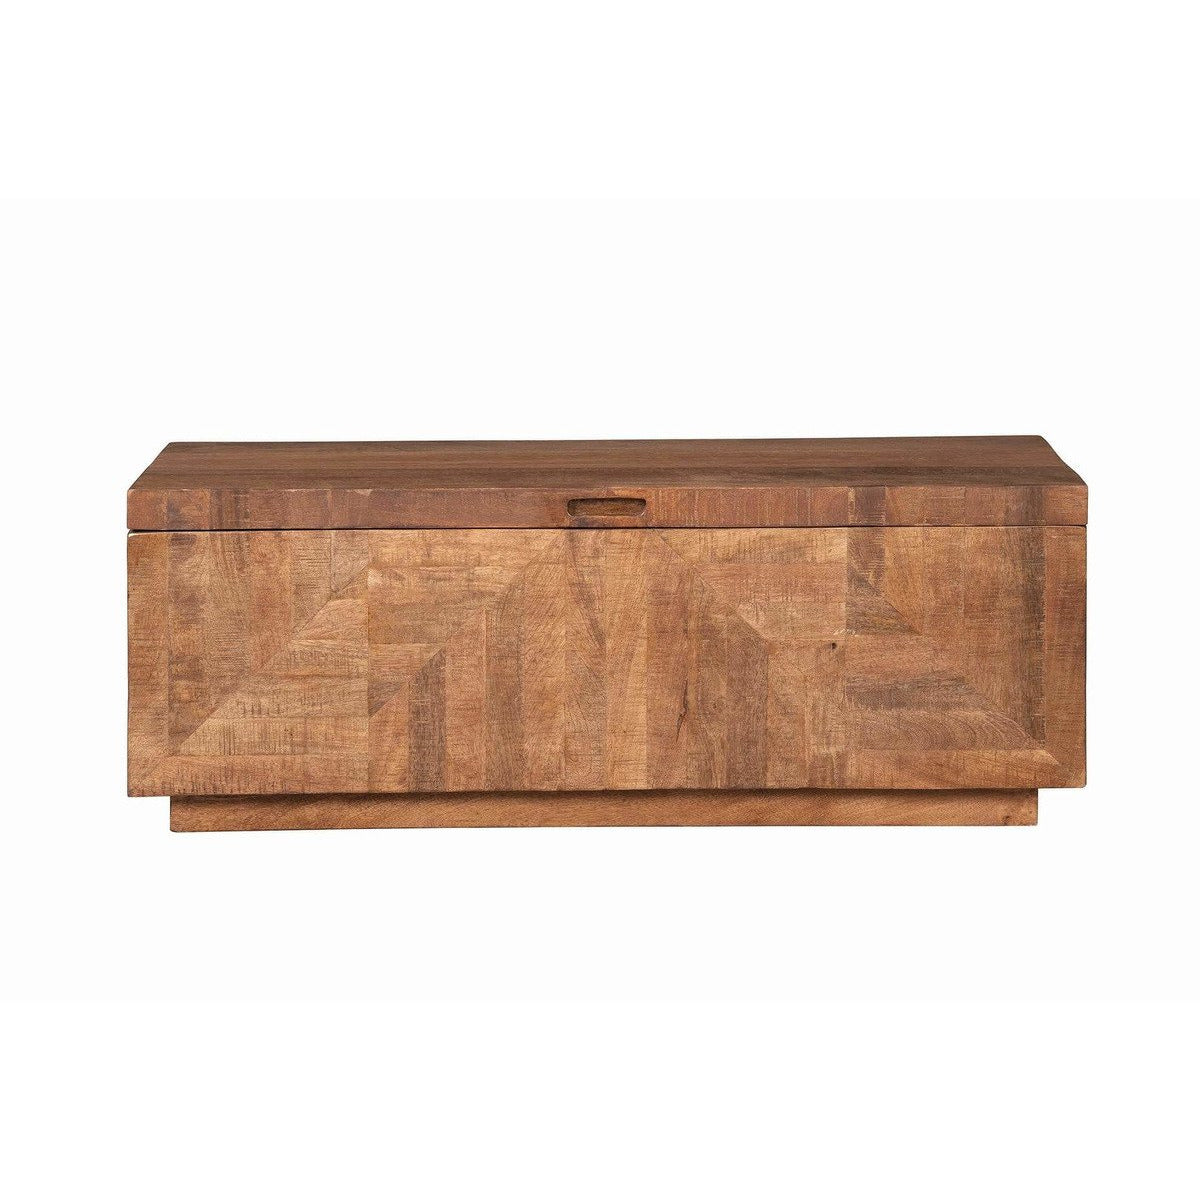 Accent And Storage Benches - Traditional Wooden Bench With Hidden Storage And Inlaid Front,